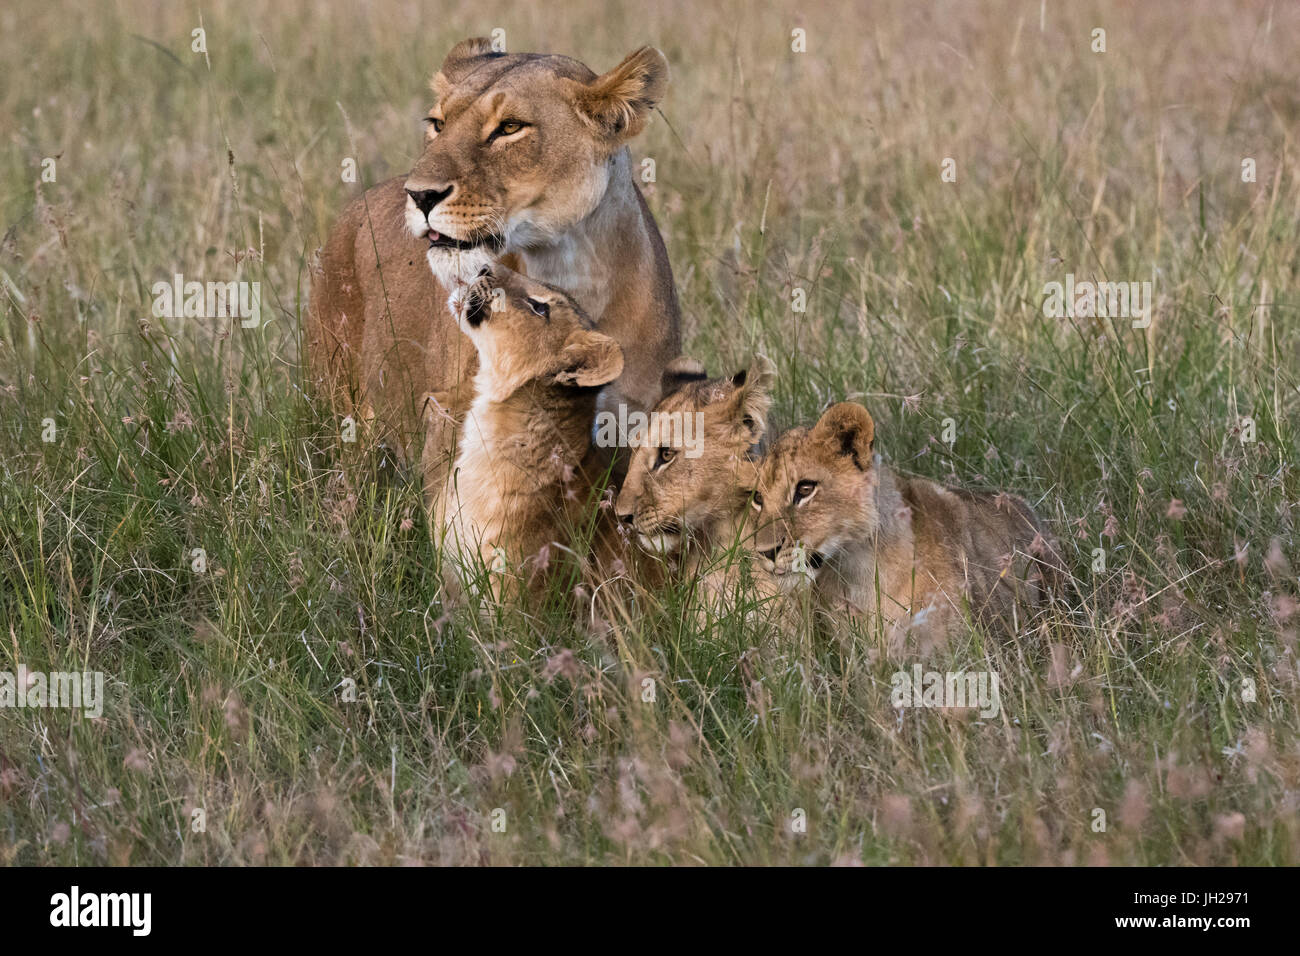 A lioness (Panthera leo) greeted by her cubs upon her return, Masai Mara, Kenya, East Africa, Africa - Stock Image